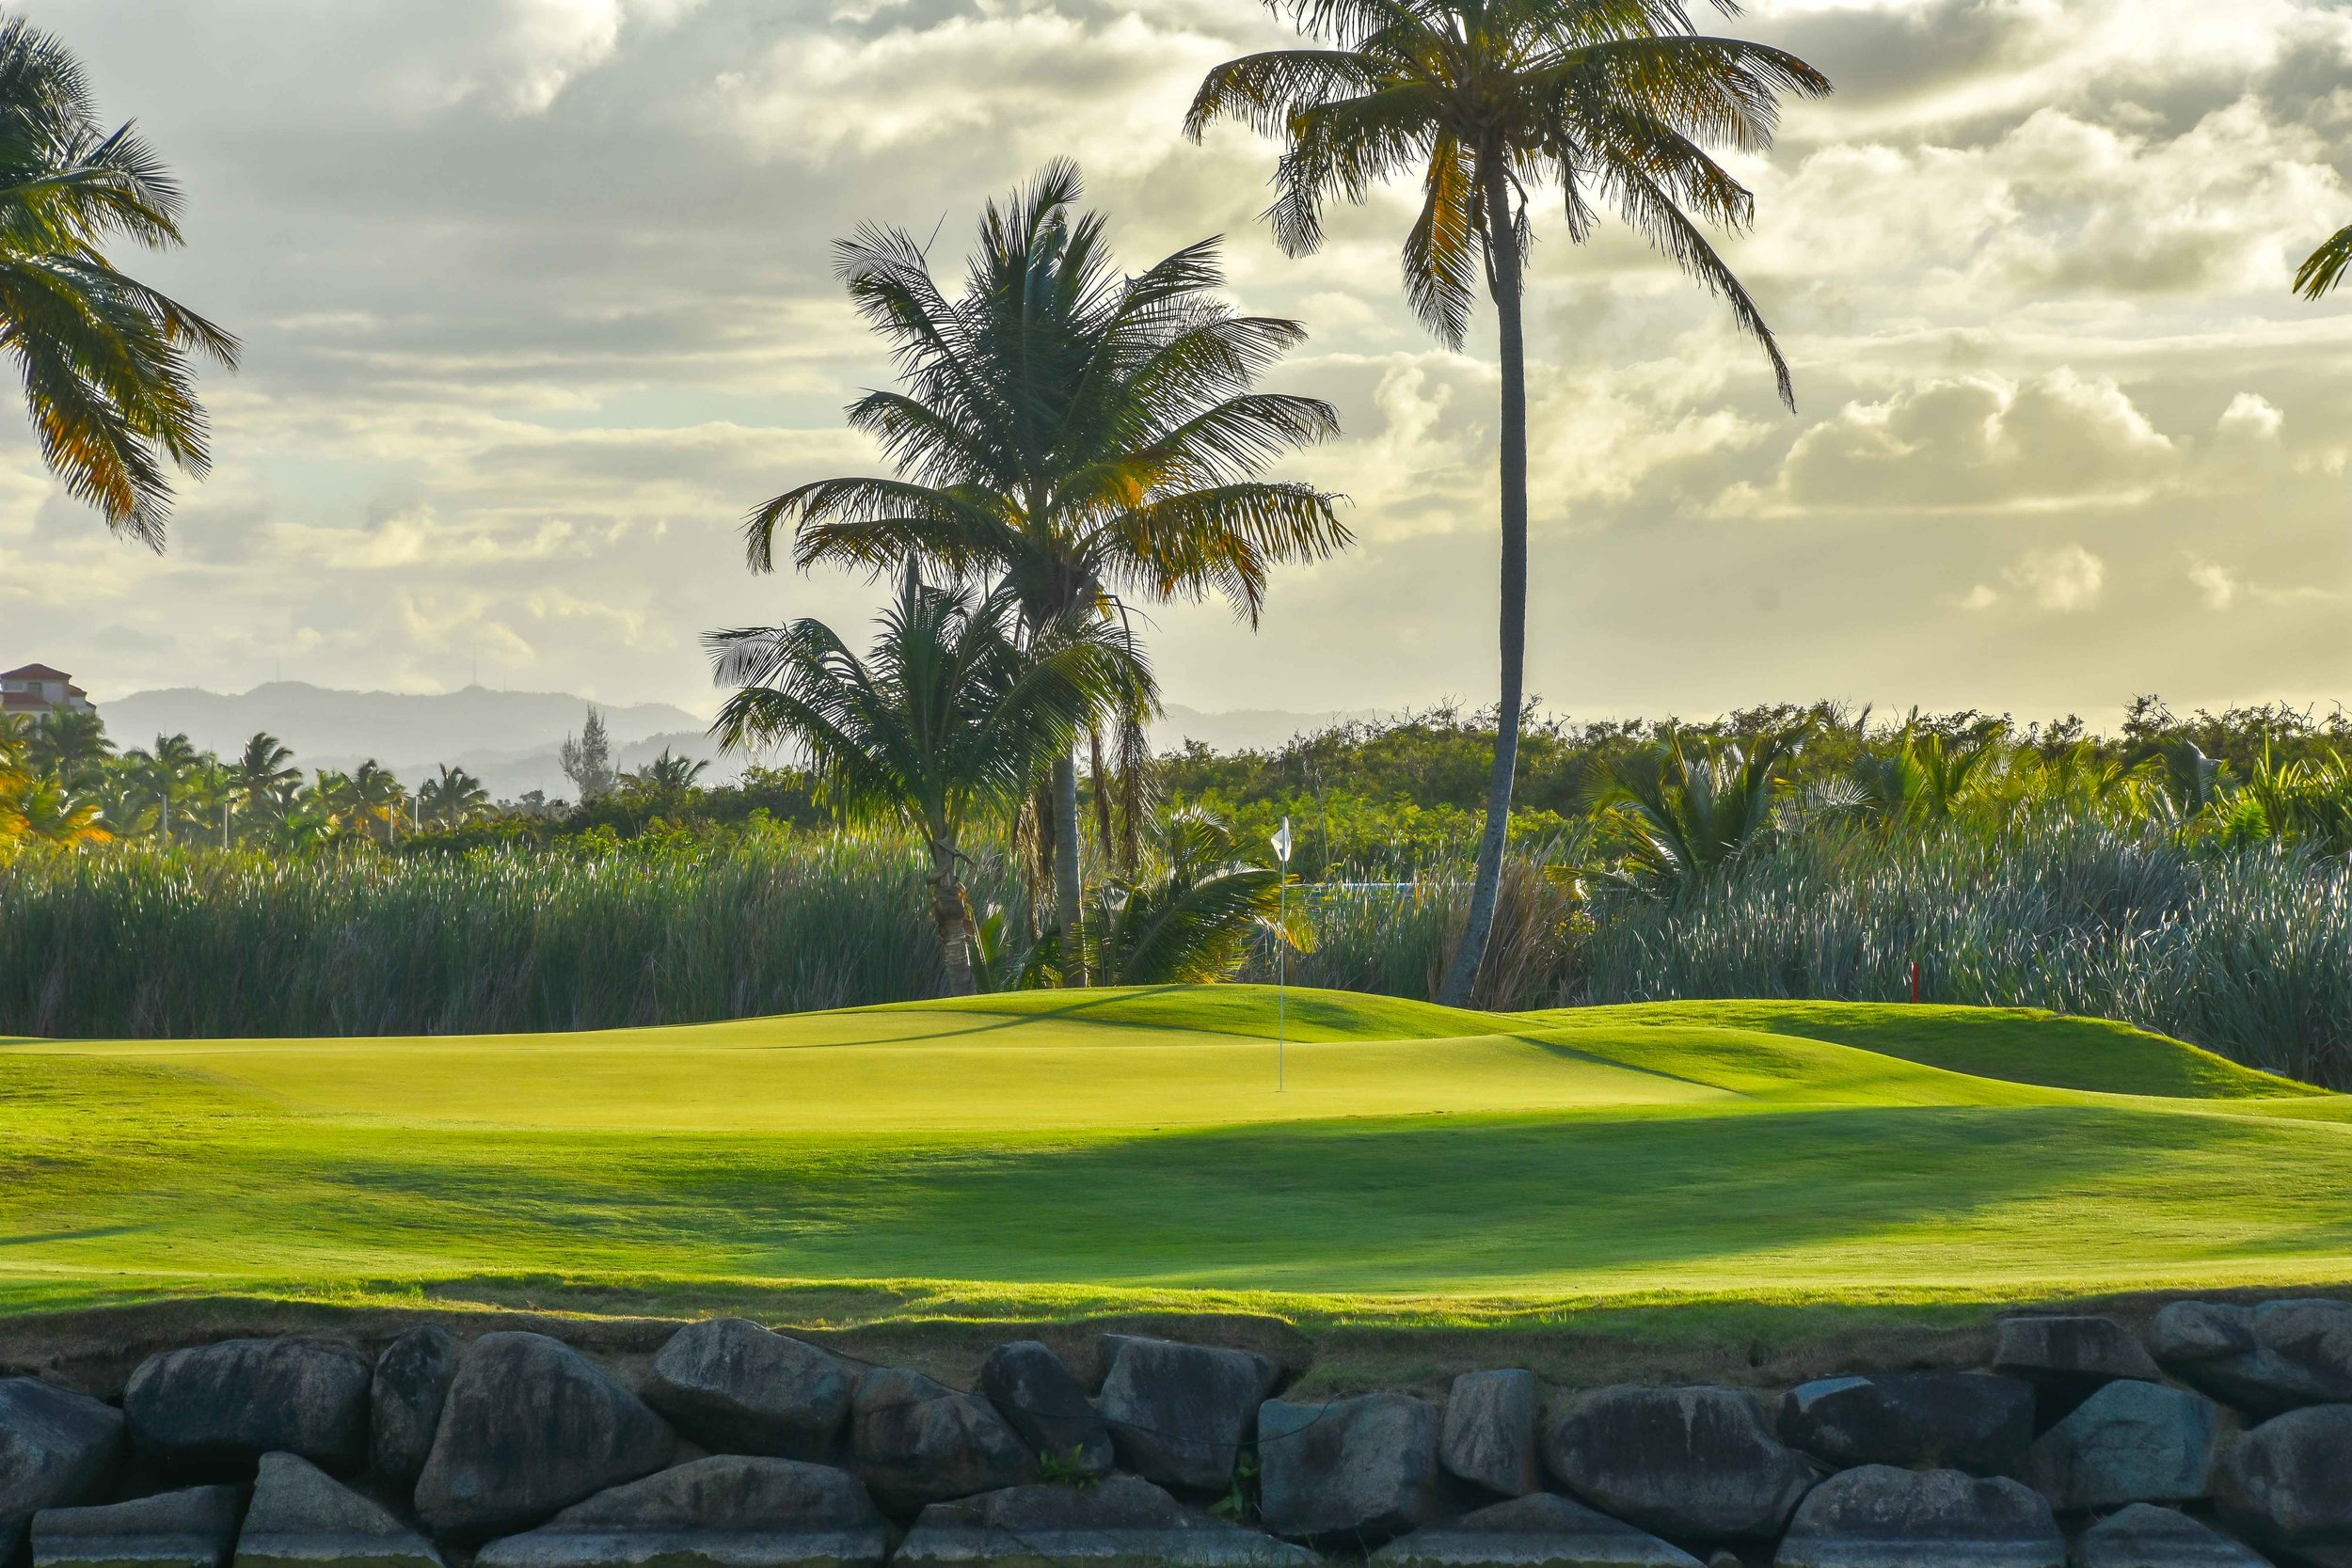 The 16th hole at the 2018 Puerto Rico Open.